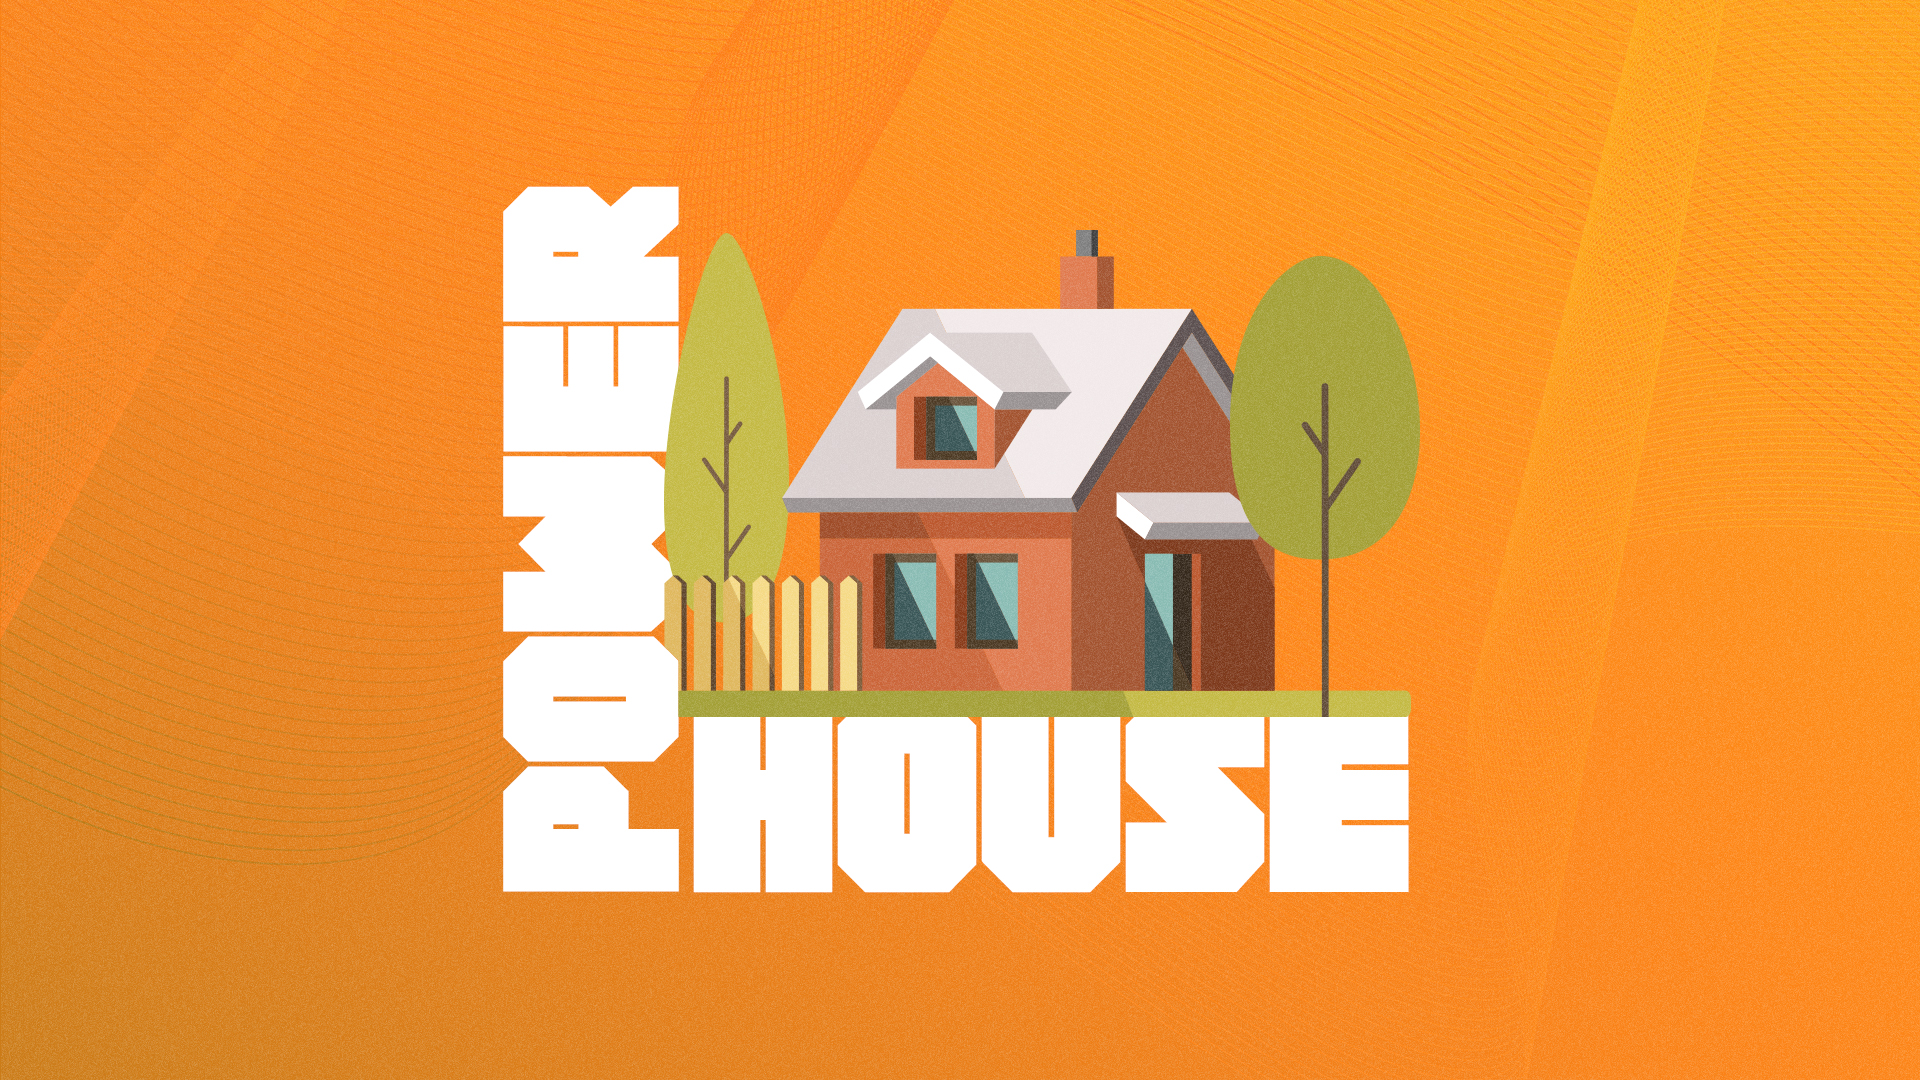 Power House - 4/28/2019 - 5/12/2019